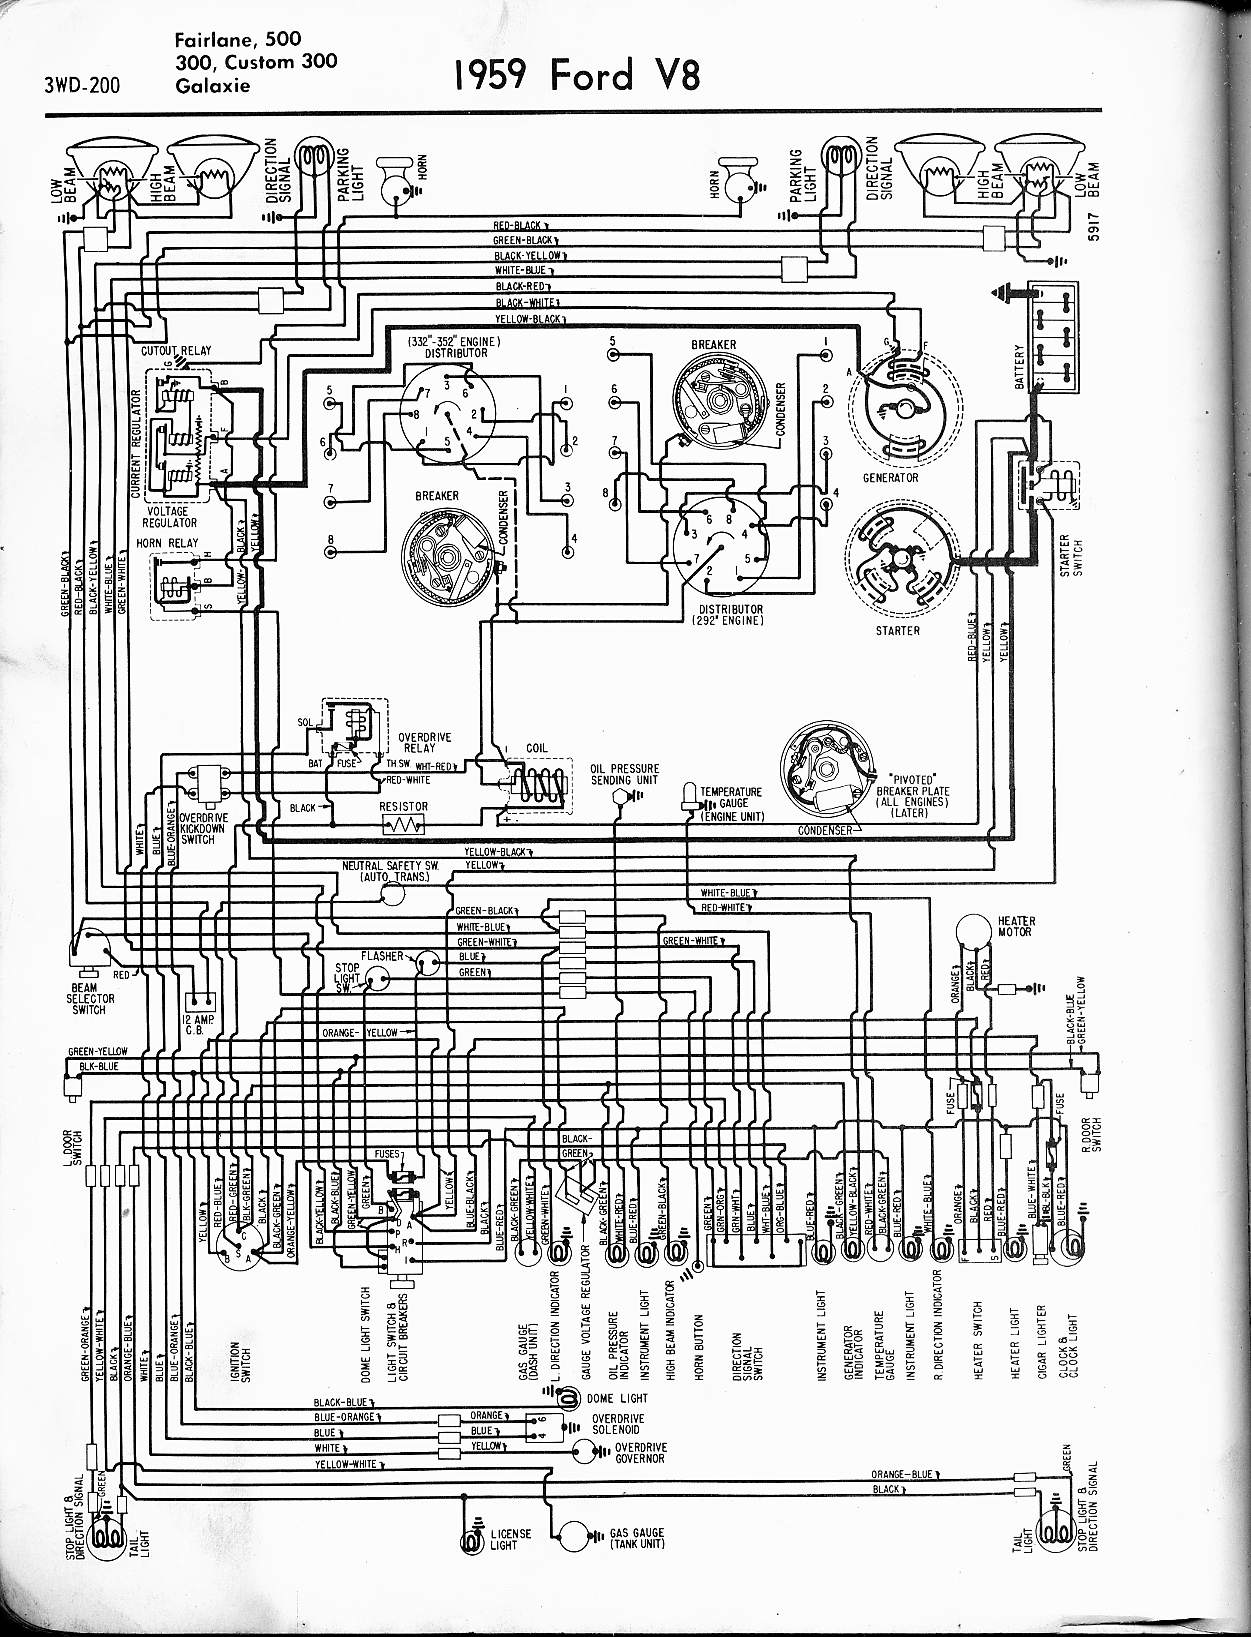 wiring diagram ford truck enthusiasts forums of international  1959 v8  fairlane, 500, 300, custom 300